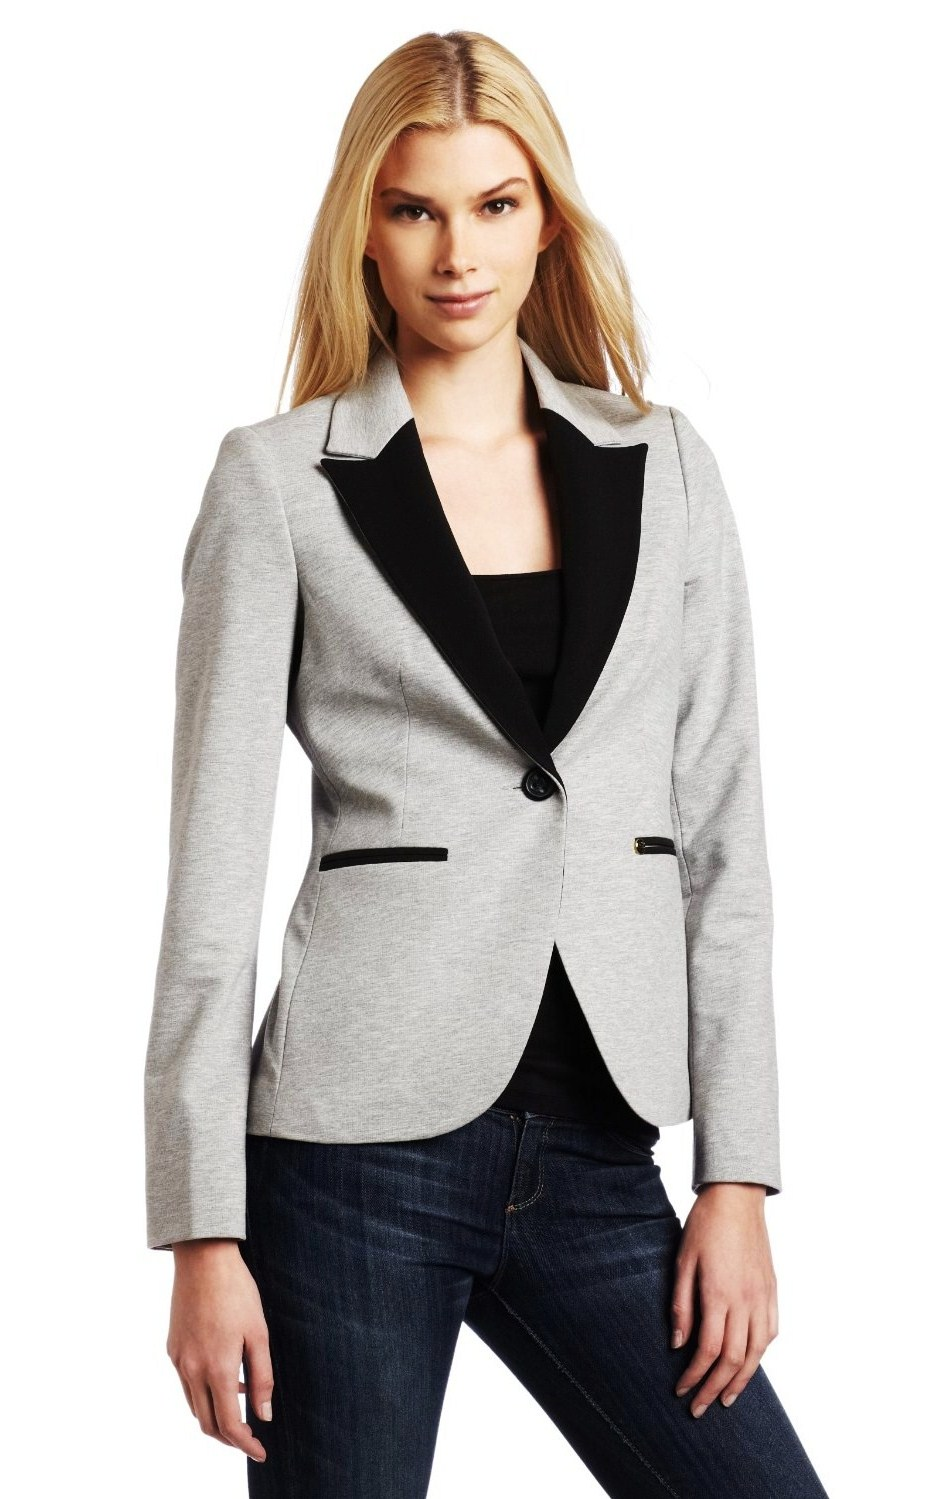 Striped Blazer Best Women's Blazers How to Put Together a Casual Blazer Look Spring Style Spring Fashion Blazer Outfit Blazer and Jeans Women's Blazer Outfit Find this Pin and more on My style by THEBOXQUEEN FASHION & LIFESTYLE.